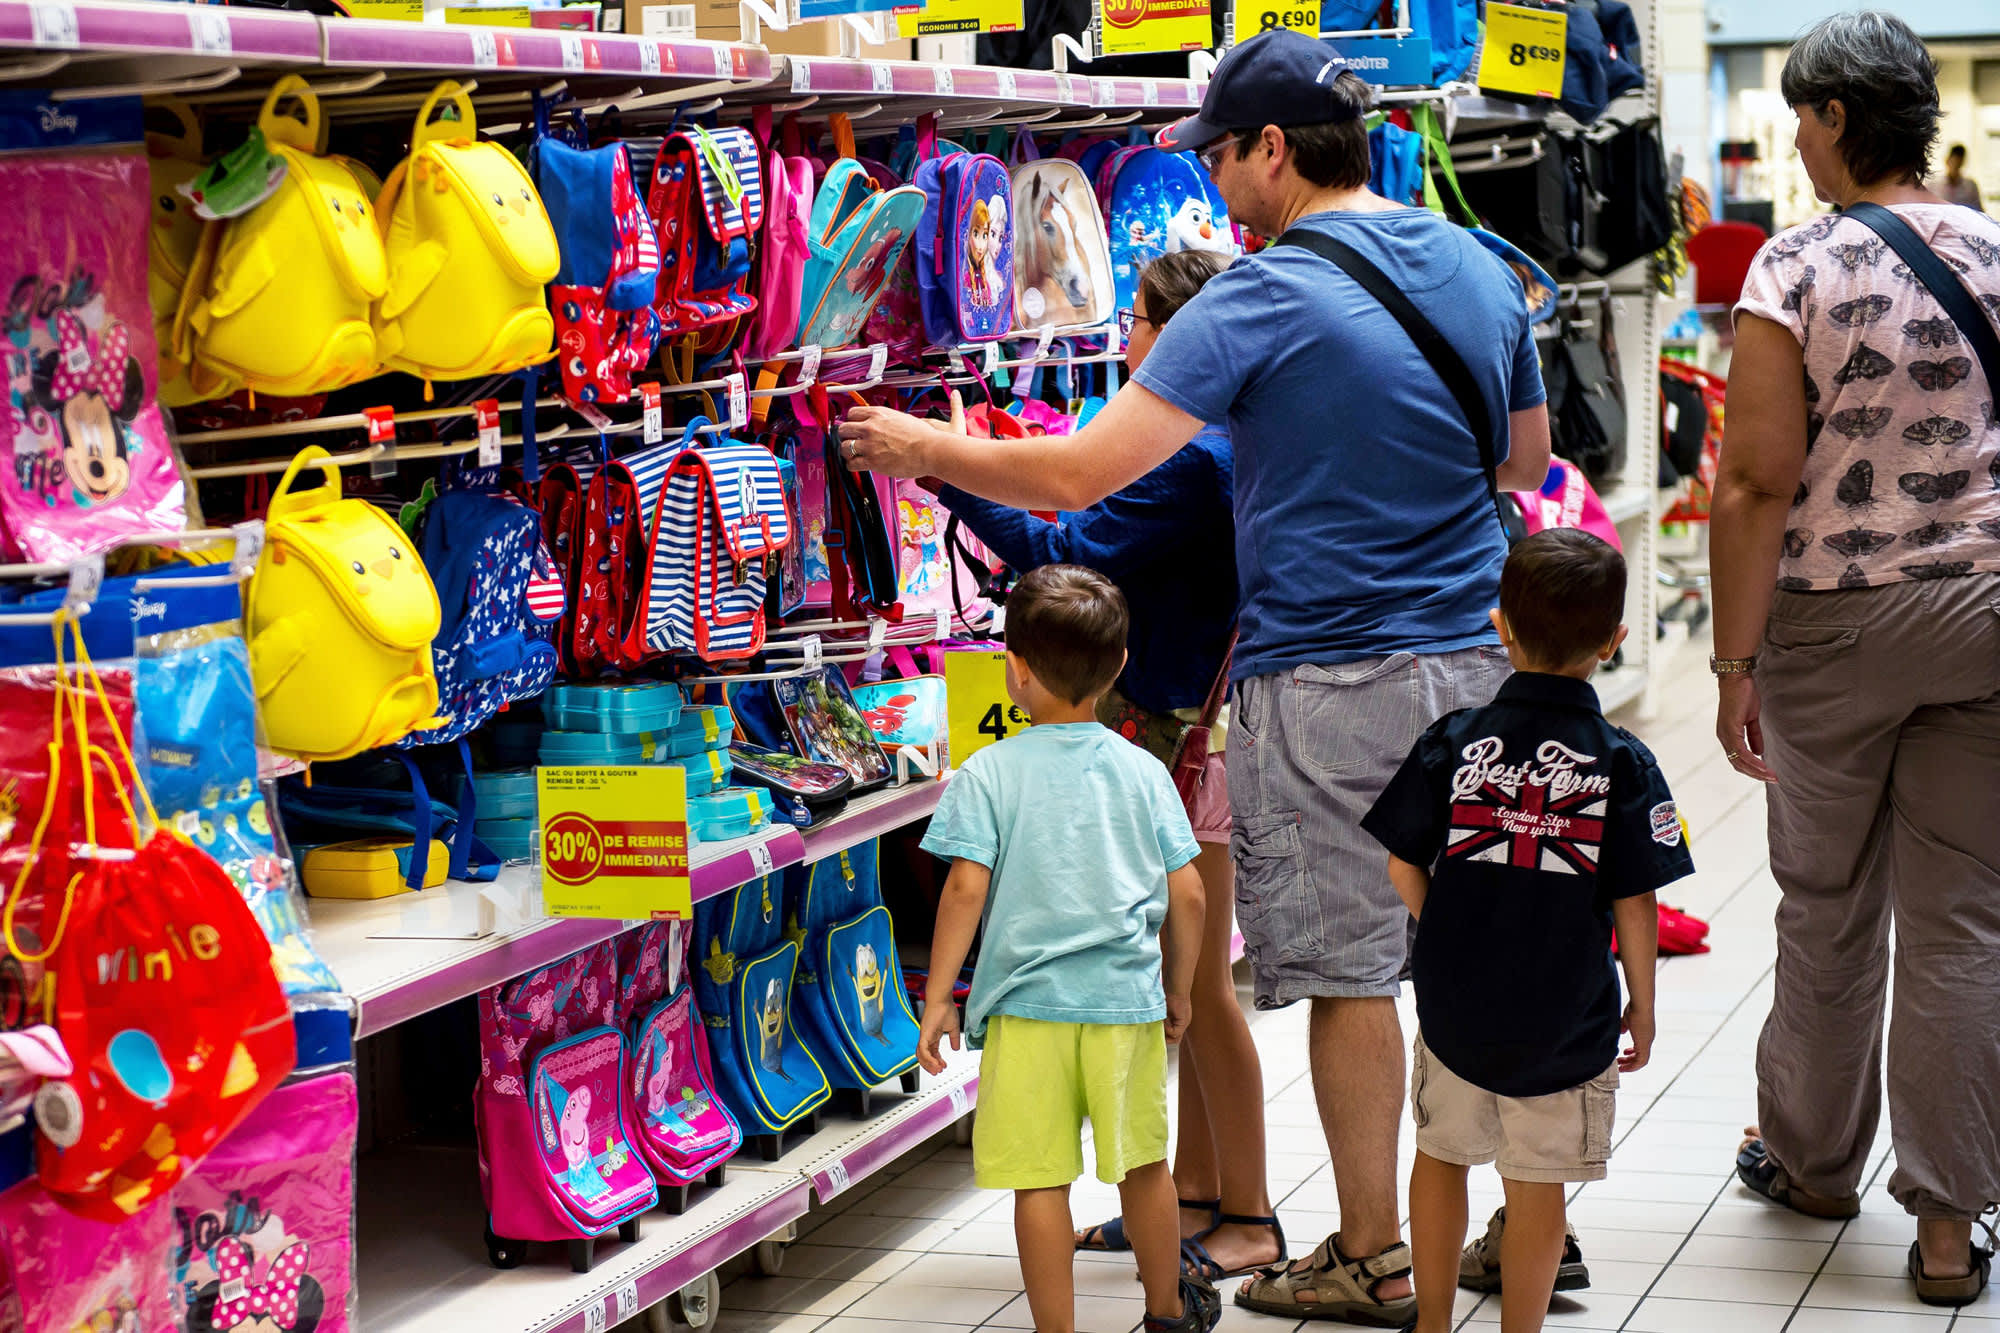 Millennial parents fight pressure to overspend on back-to-school shopping